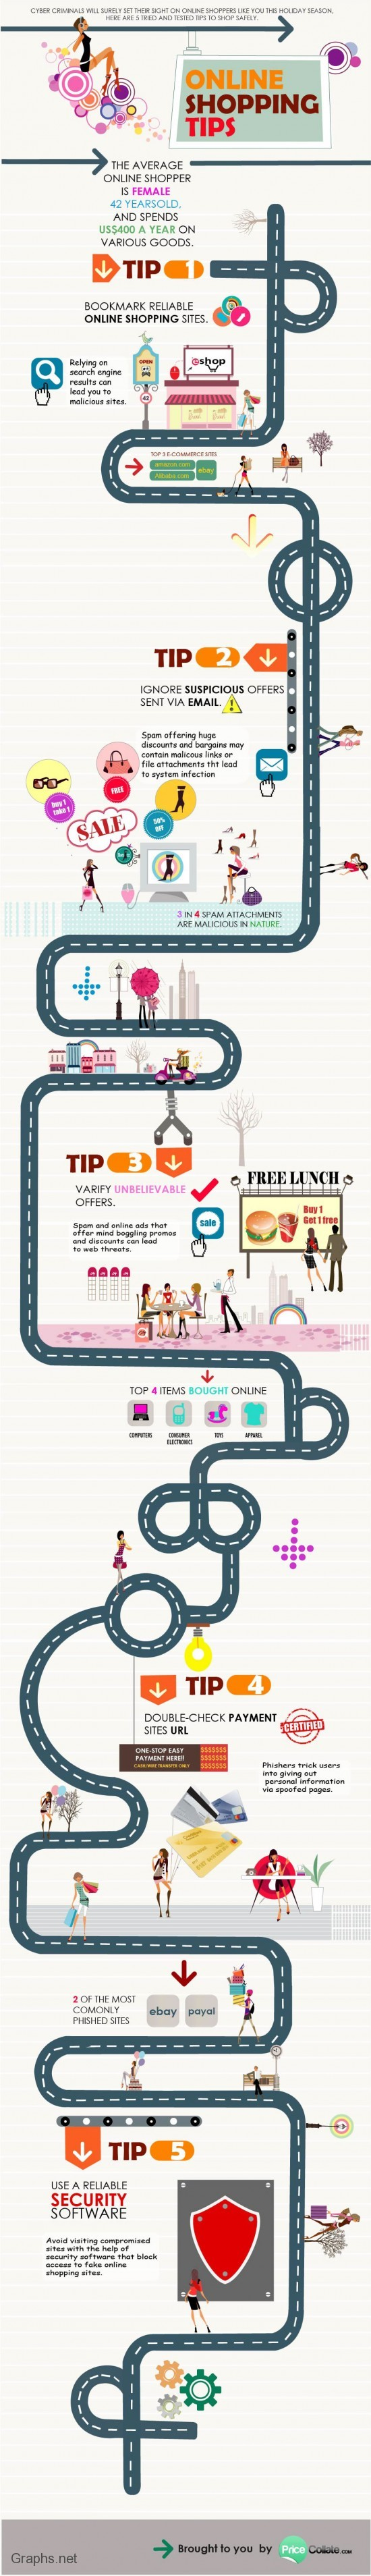 Top 5 Tips For Safe Online Shopping